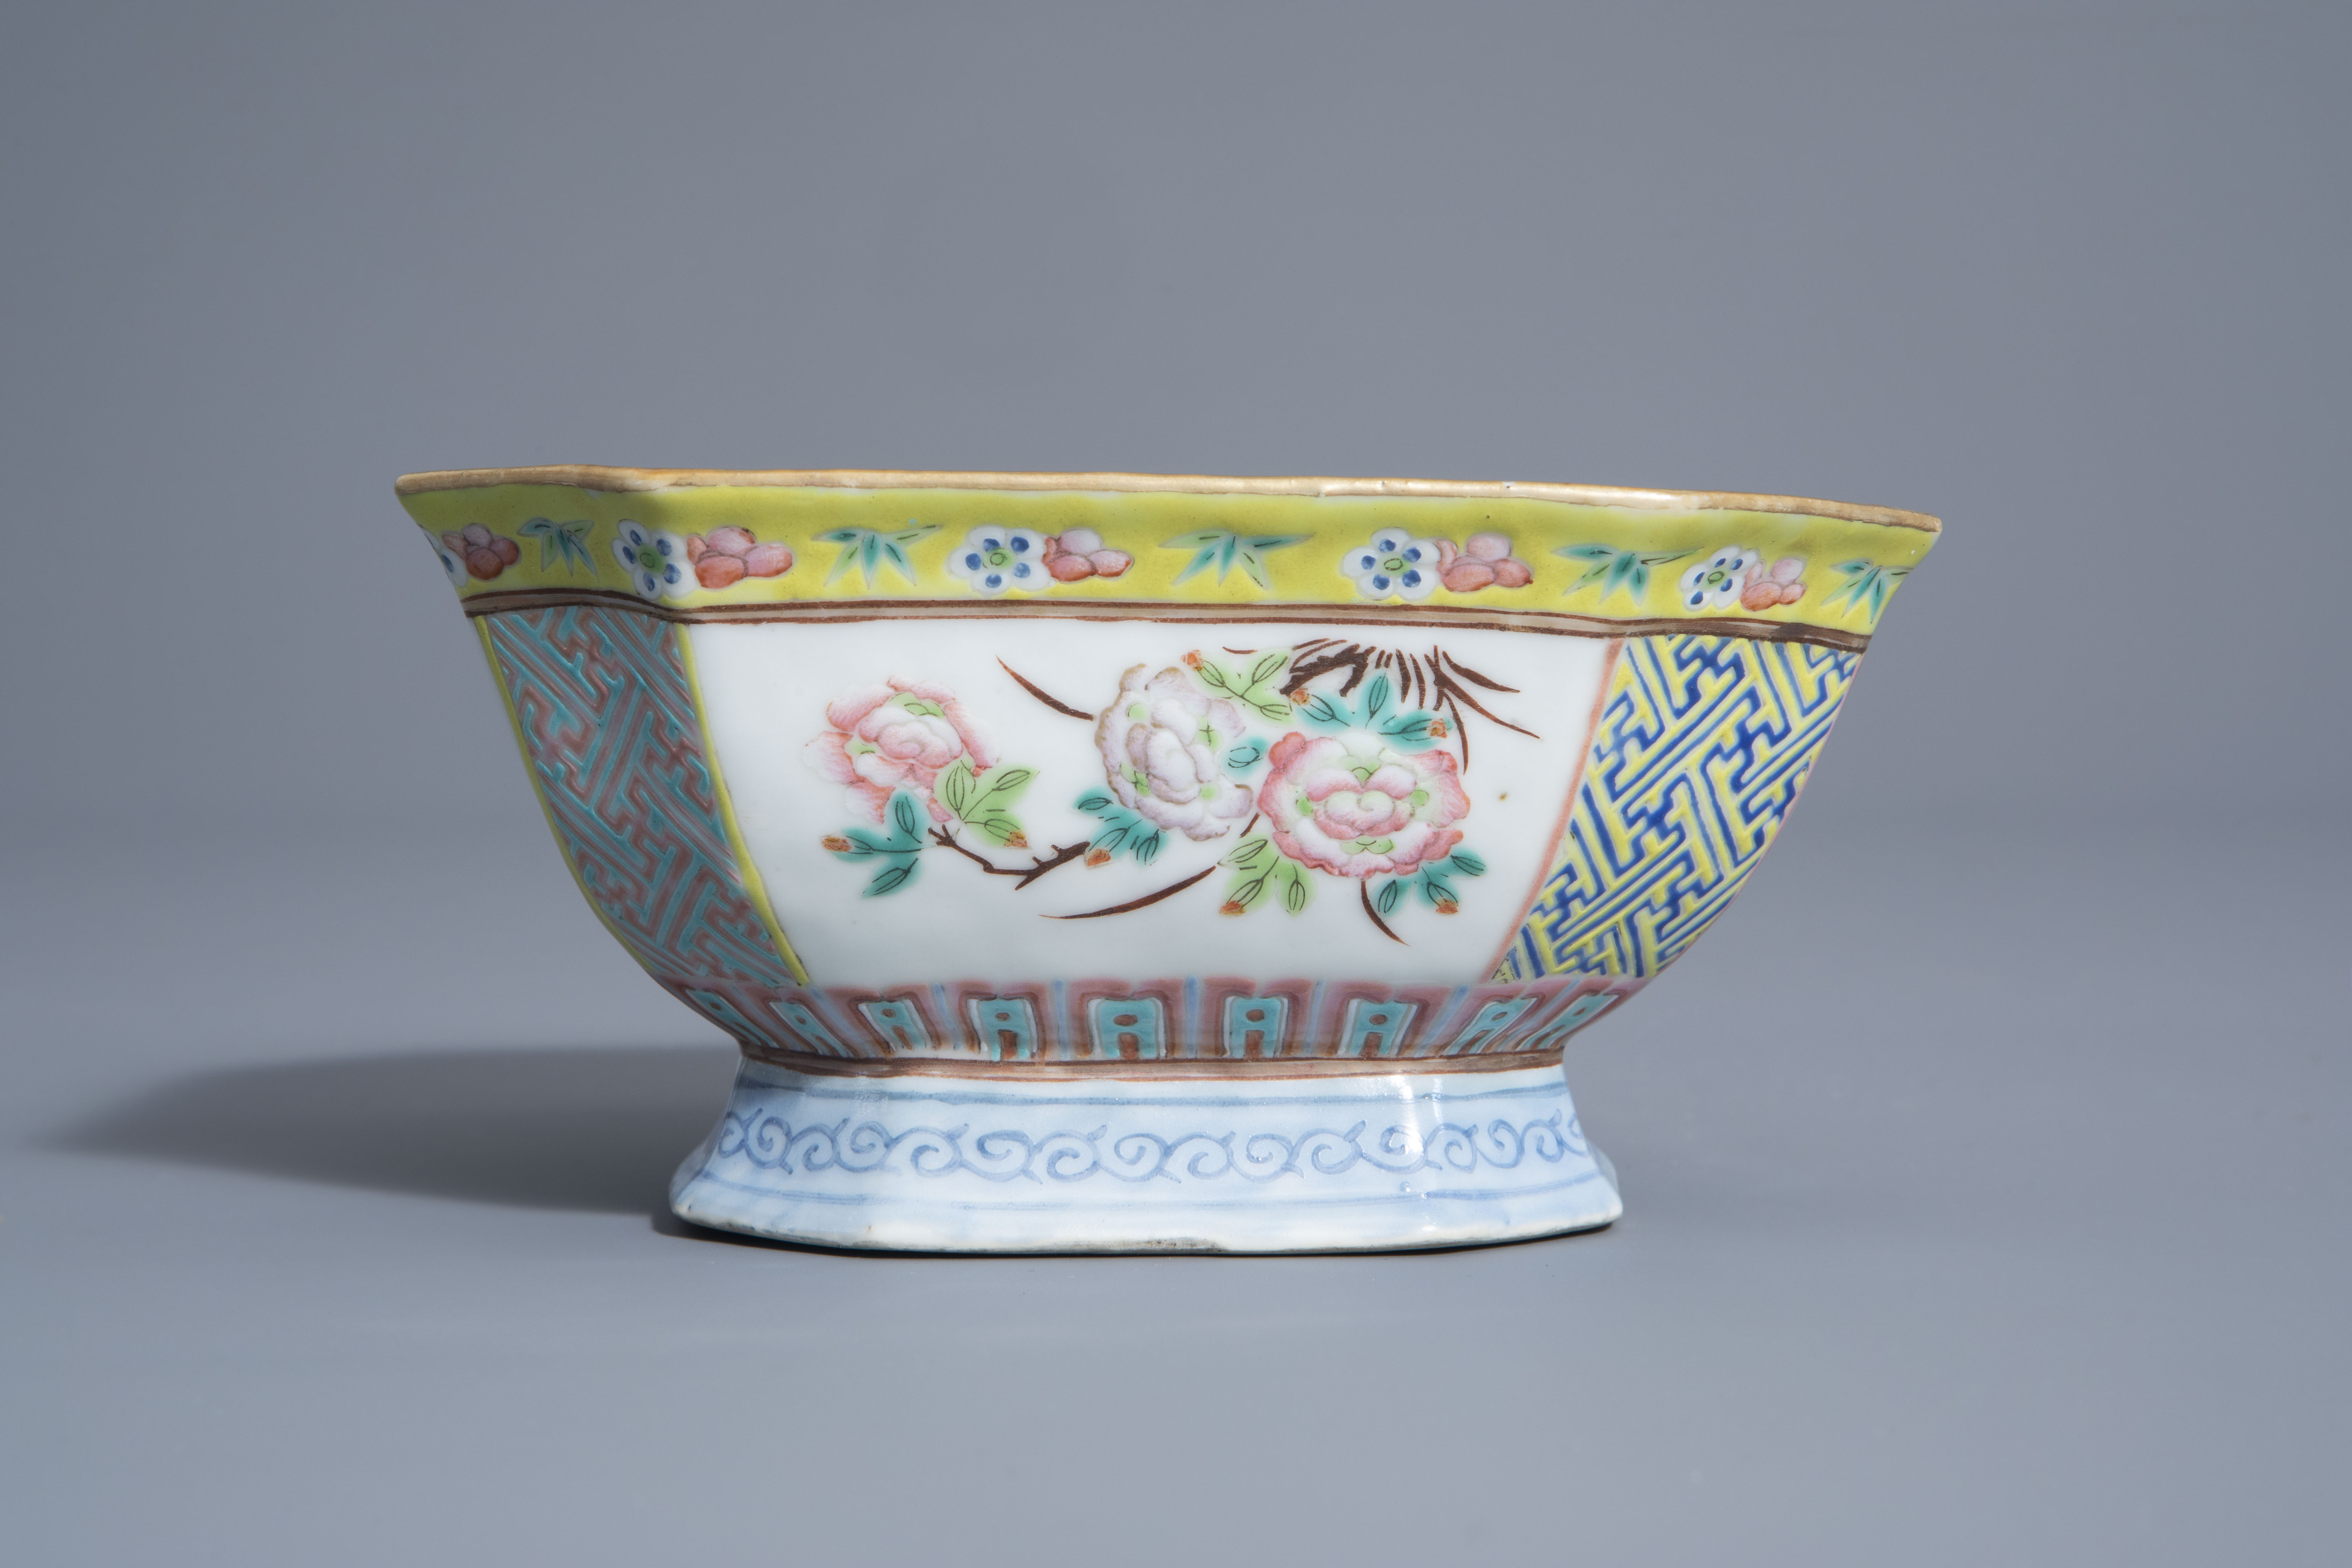 A Chinese famille rose octagonal bowl with floral design, Qianlong mark, 19th C. - Image 4 of 7